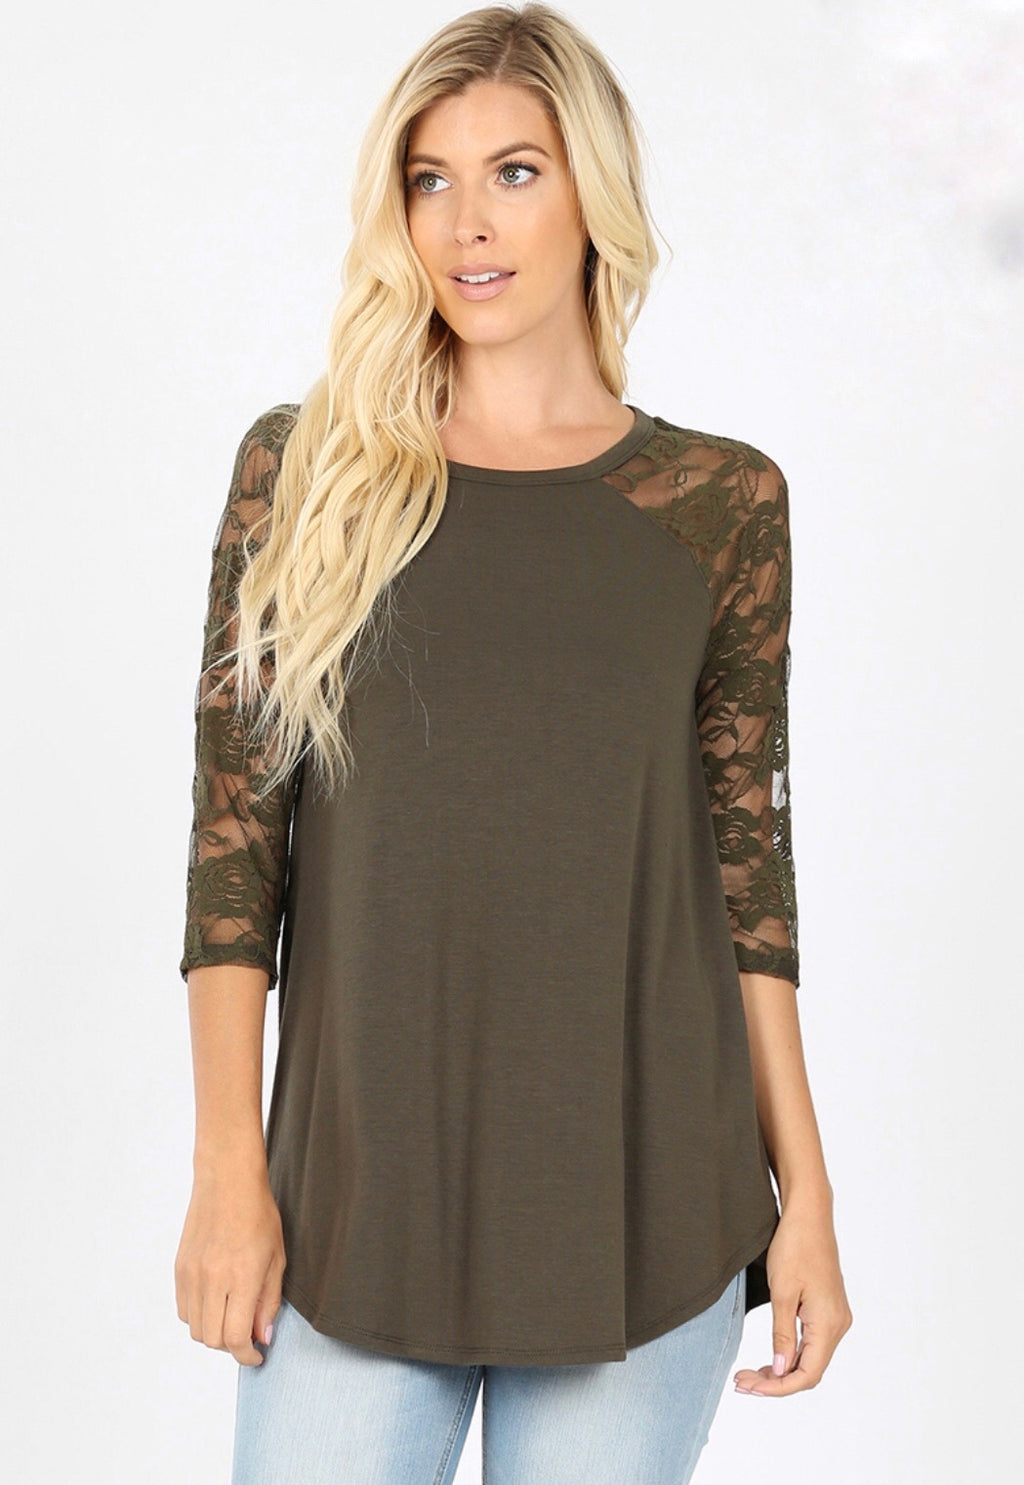 Dark Olive Lace Half Sleeve Top